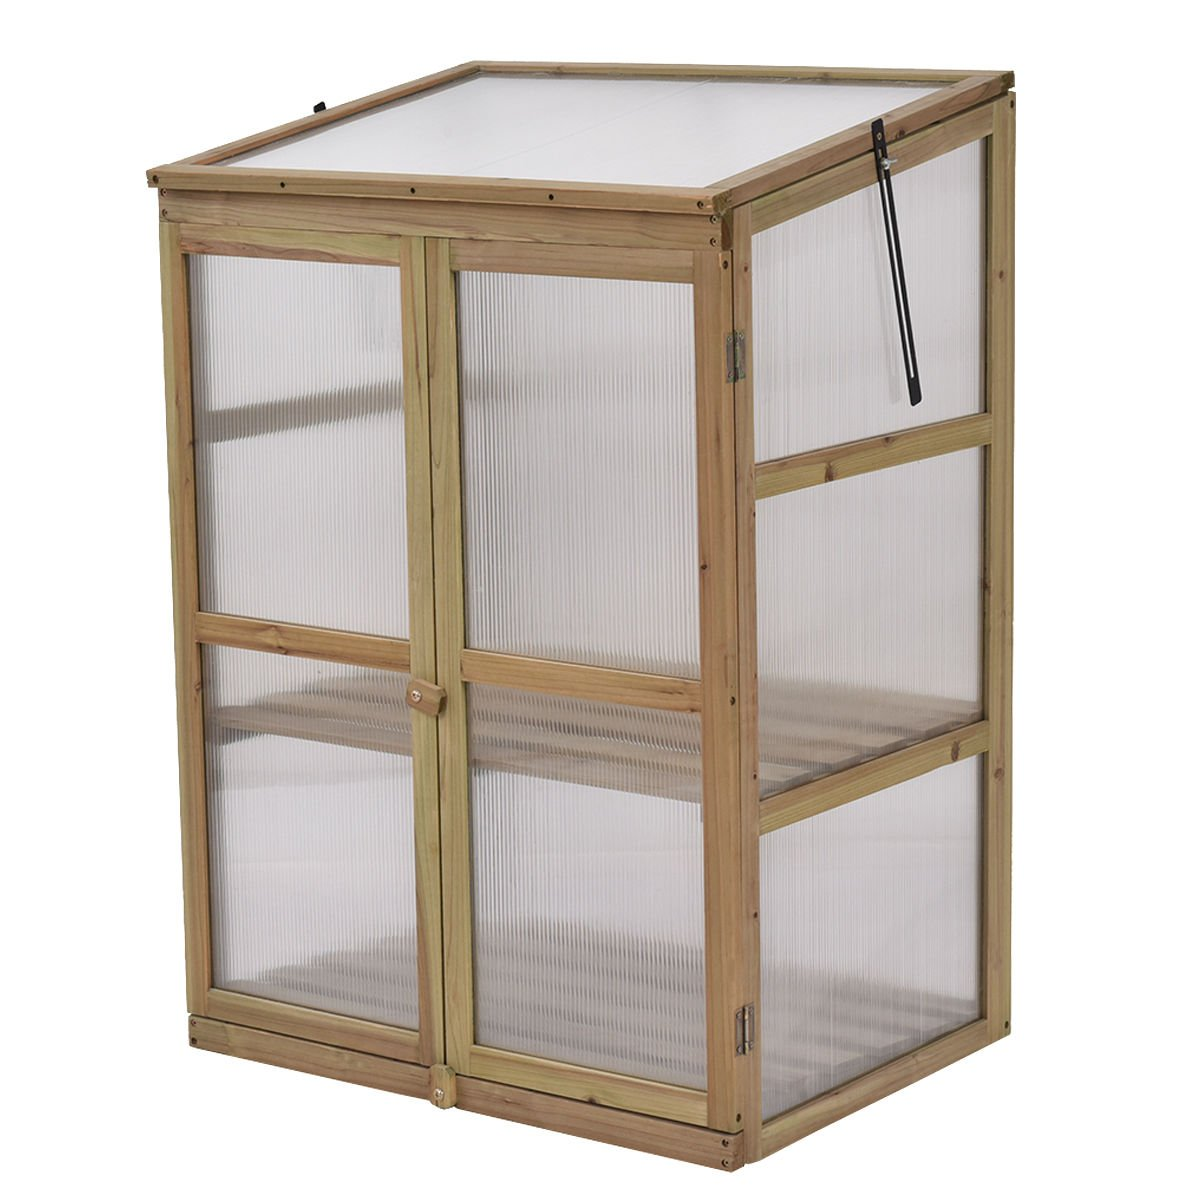 Greenhouse Portable Wooden Garden Cold Frame Raised Plants Shelve Protection by Eramaix